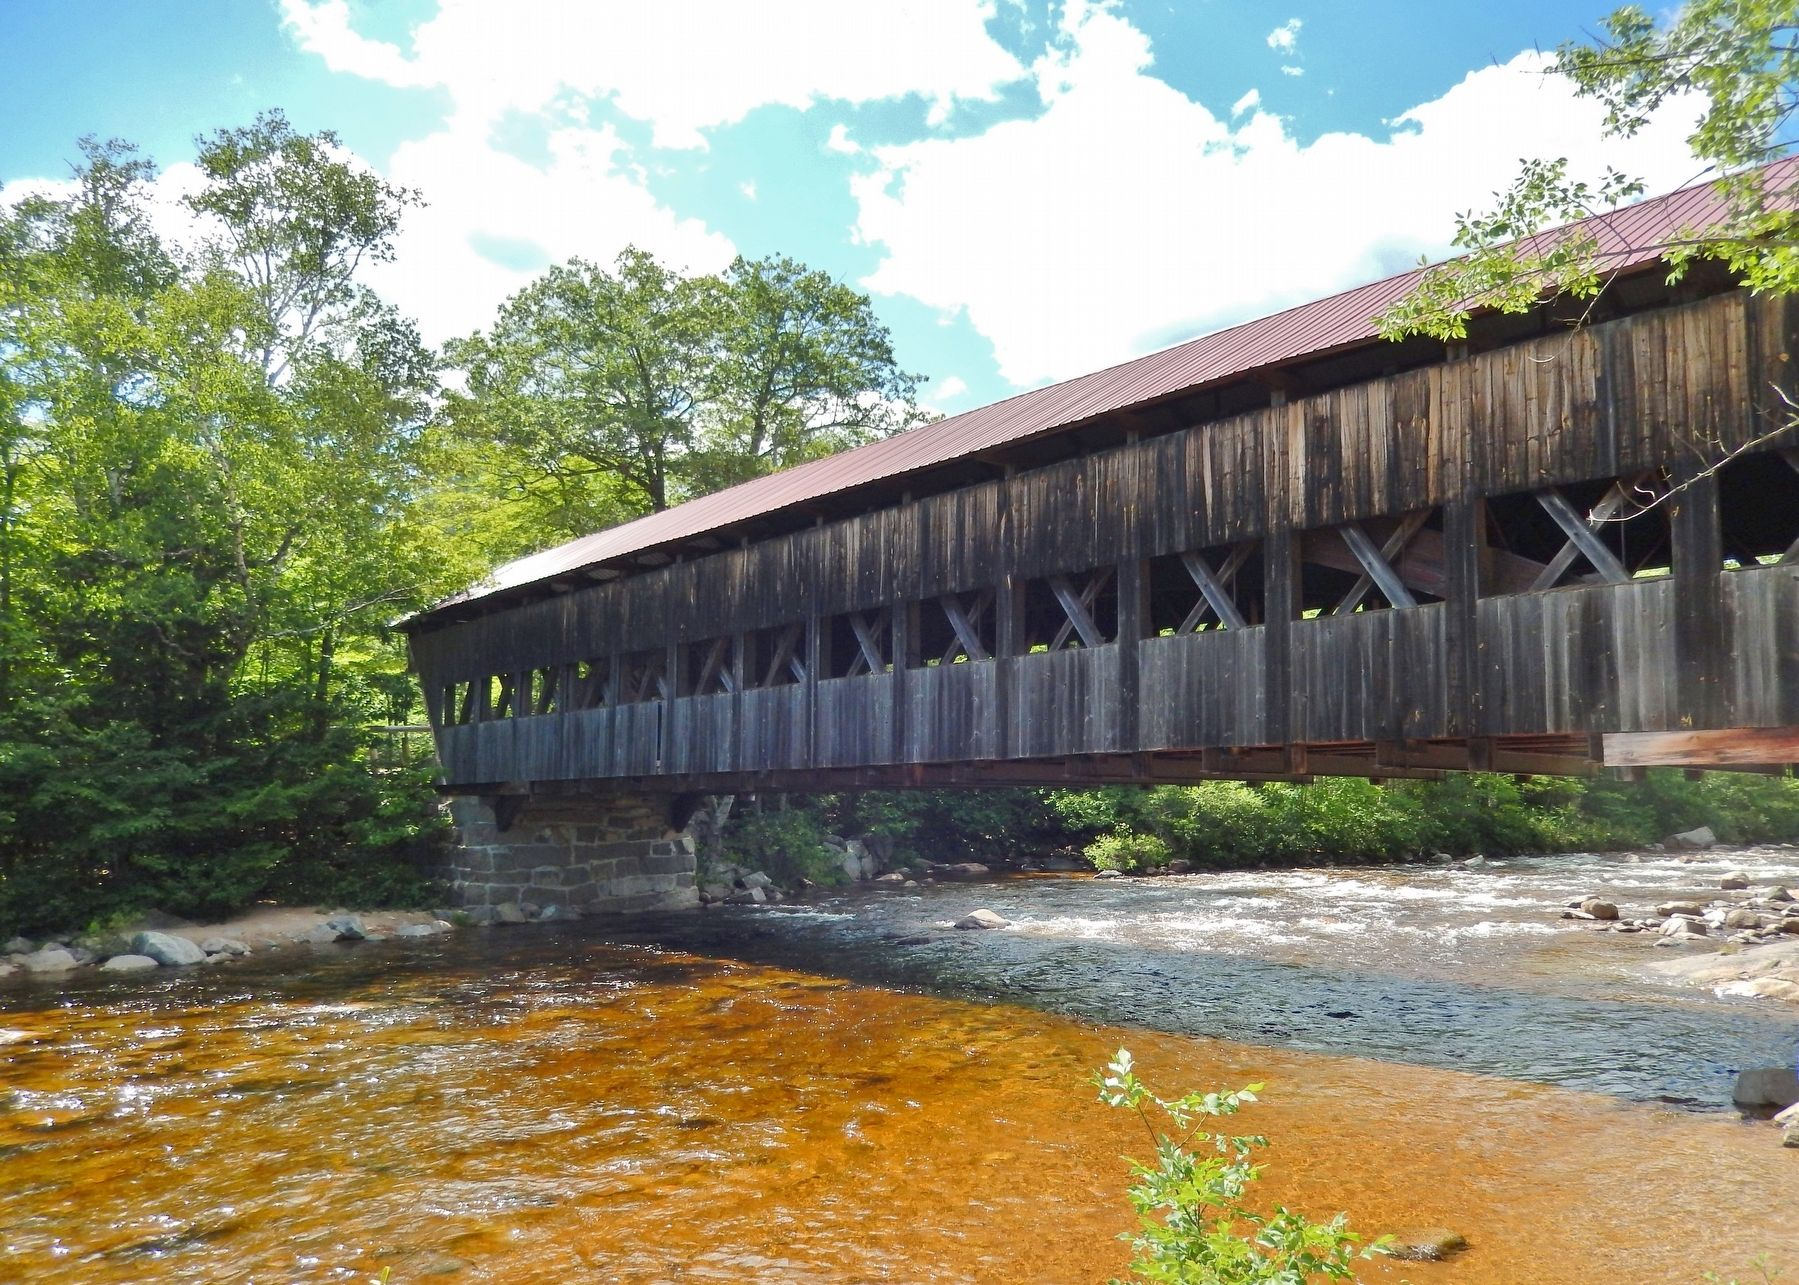 Albany Covered Bridge (<i>view fron near marker</i>) image. Click for full size.